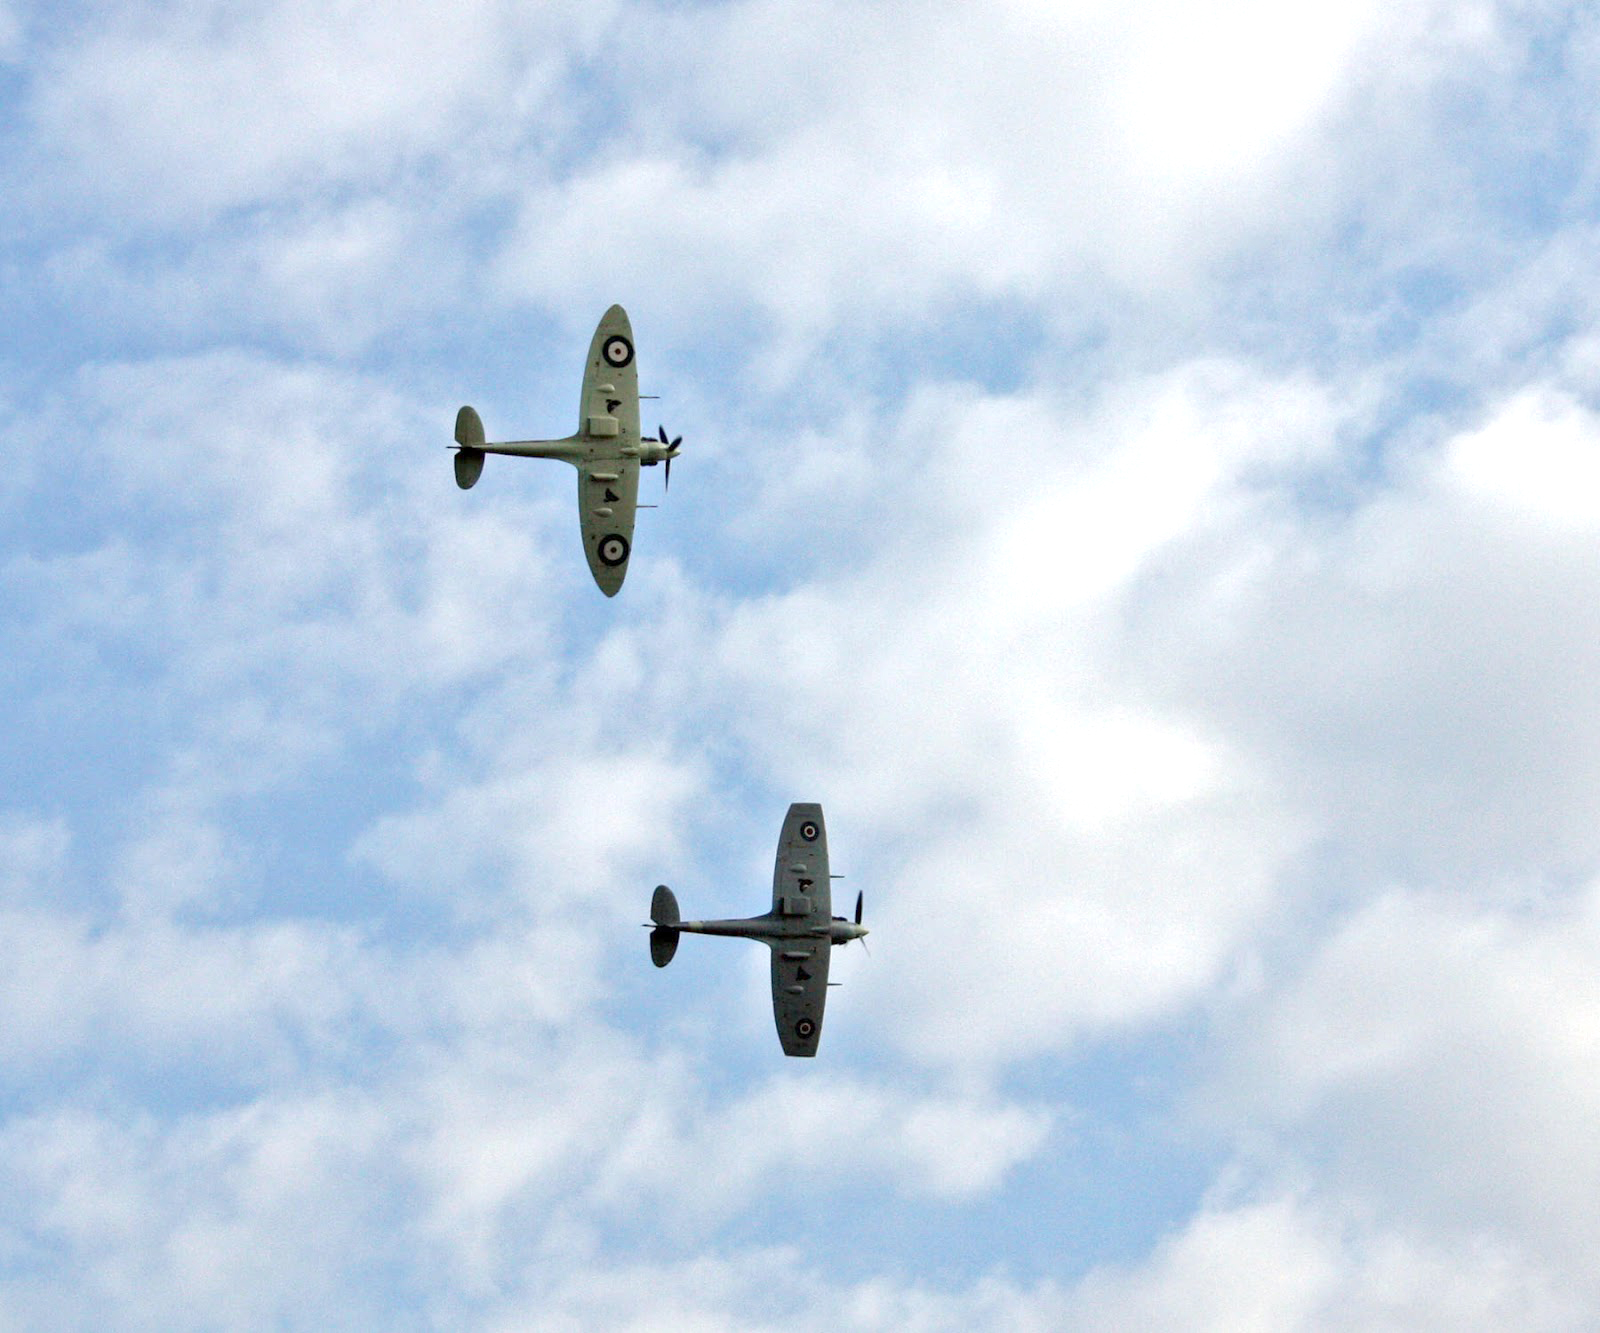 Duxford Airshow September 14th 2014 - Spitfires one with clipped wings